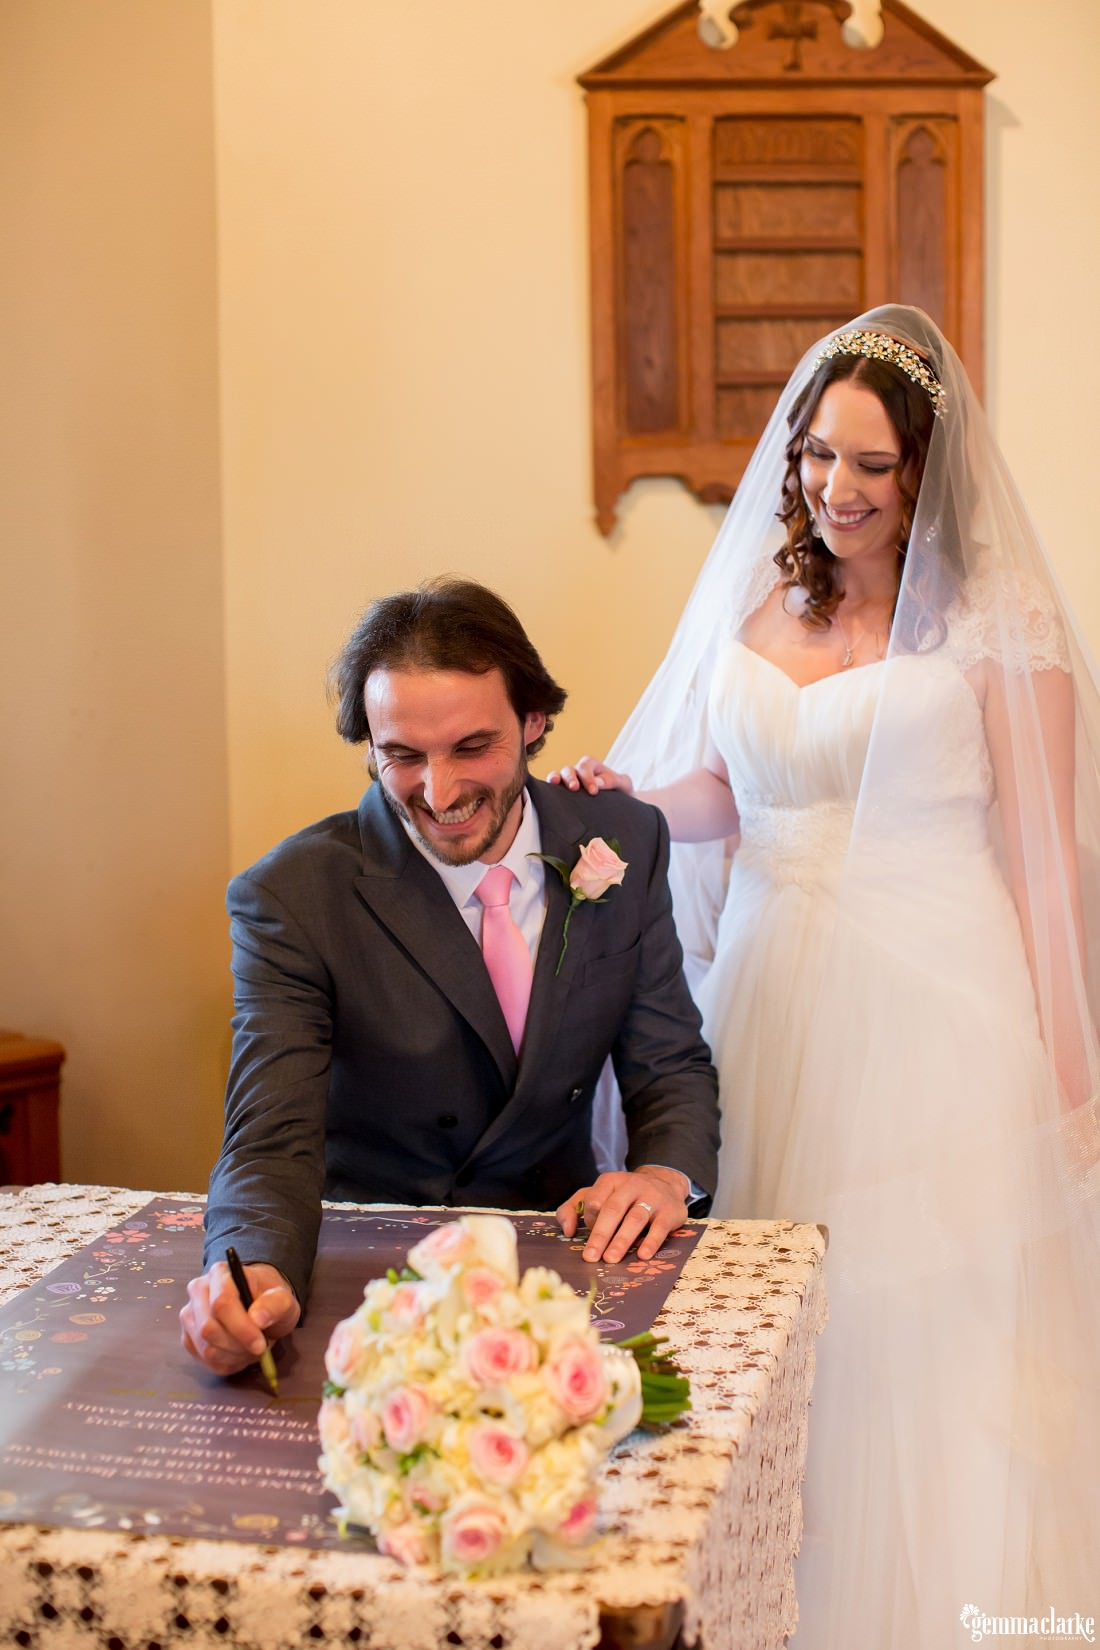 gemmaclarkephotography_exeter-wedding_sylvan-glen-wedding_celeste-and-deane_0033